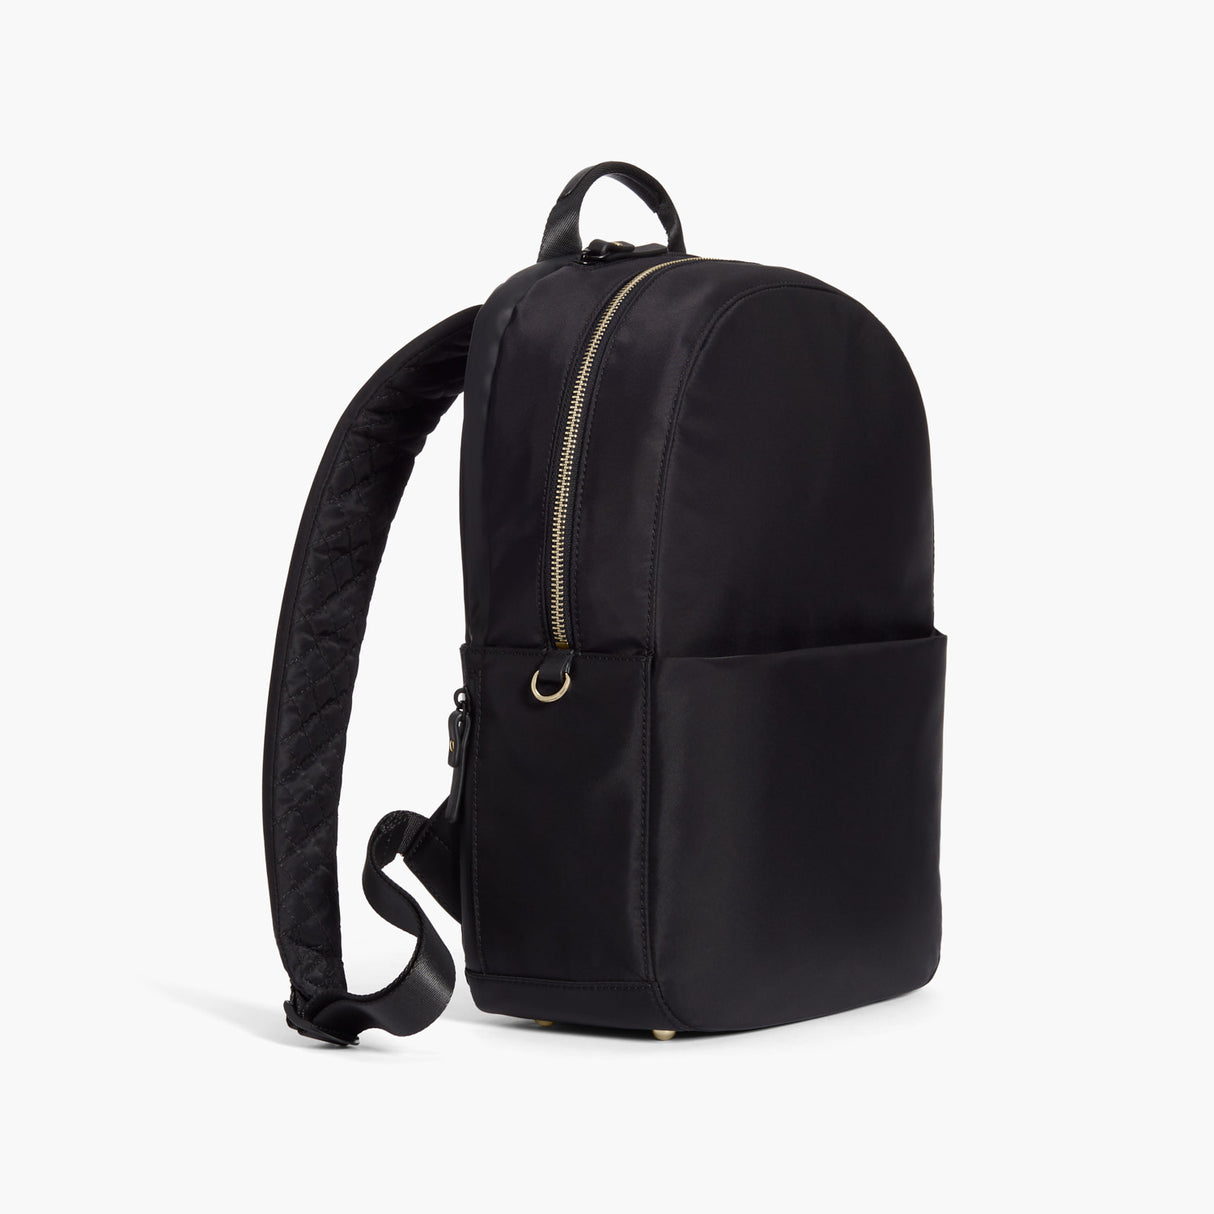 Side - Beacon - Nylon - Black / Gold / Lavender - Backpack - Lo & Sons